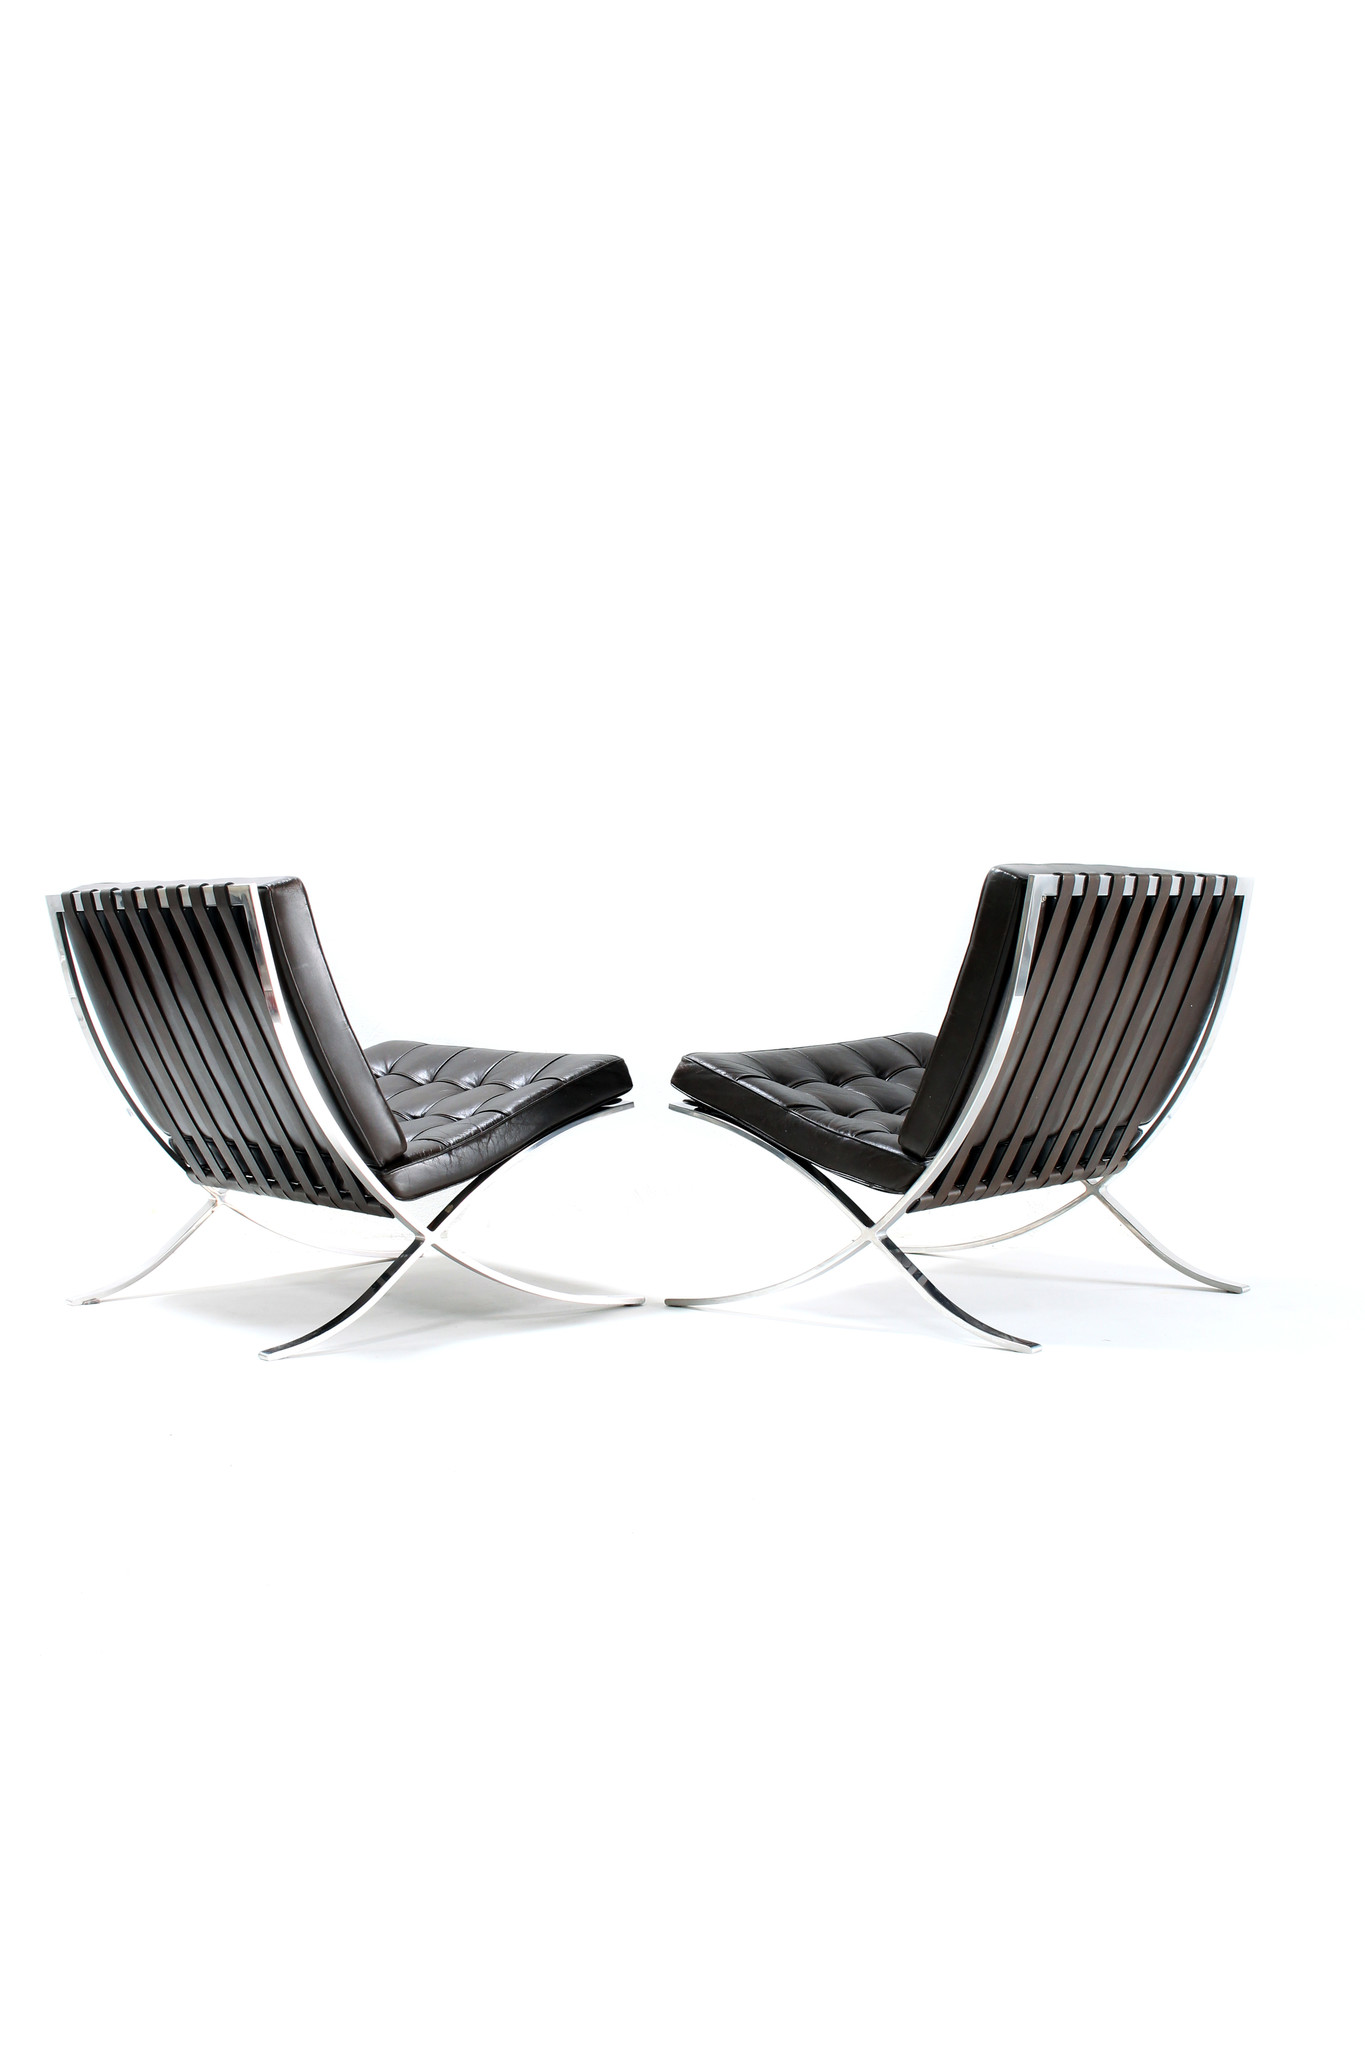 Pair of vintage Barcelona chairs by Ludwig Mies van der Rohe